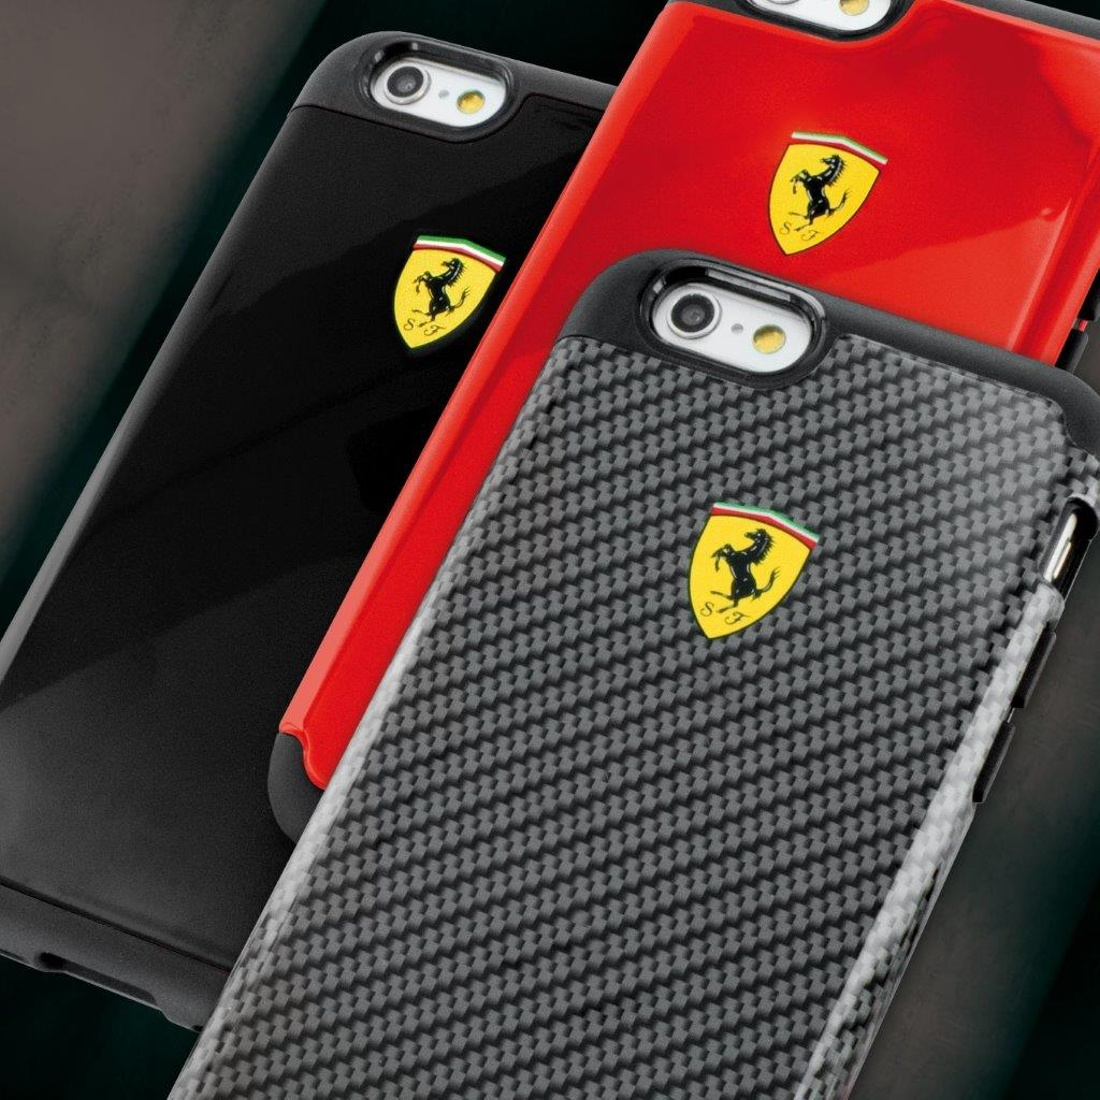 Ferrari Mobile accessories